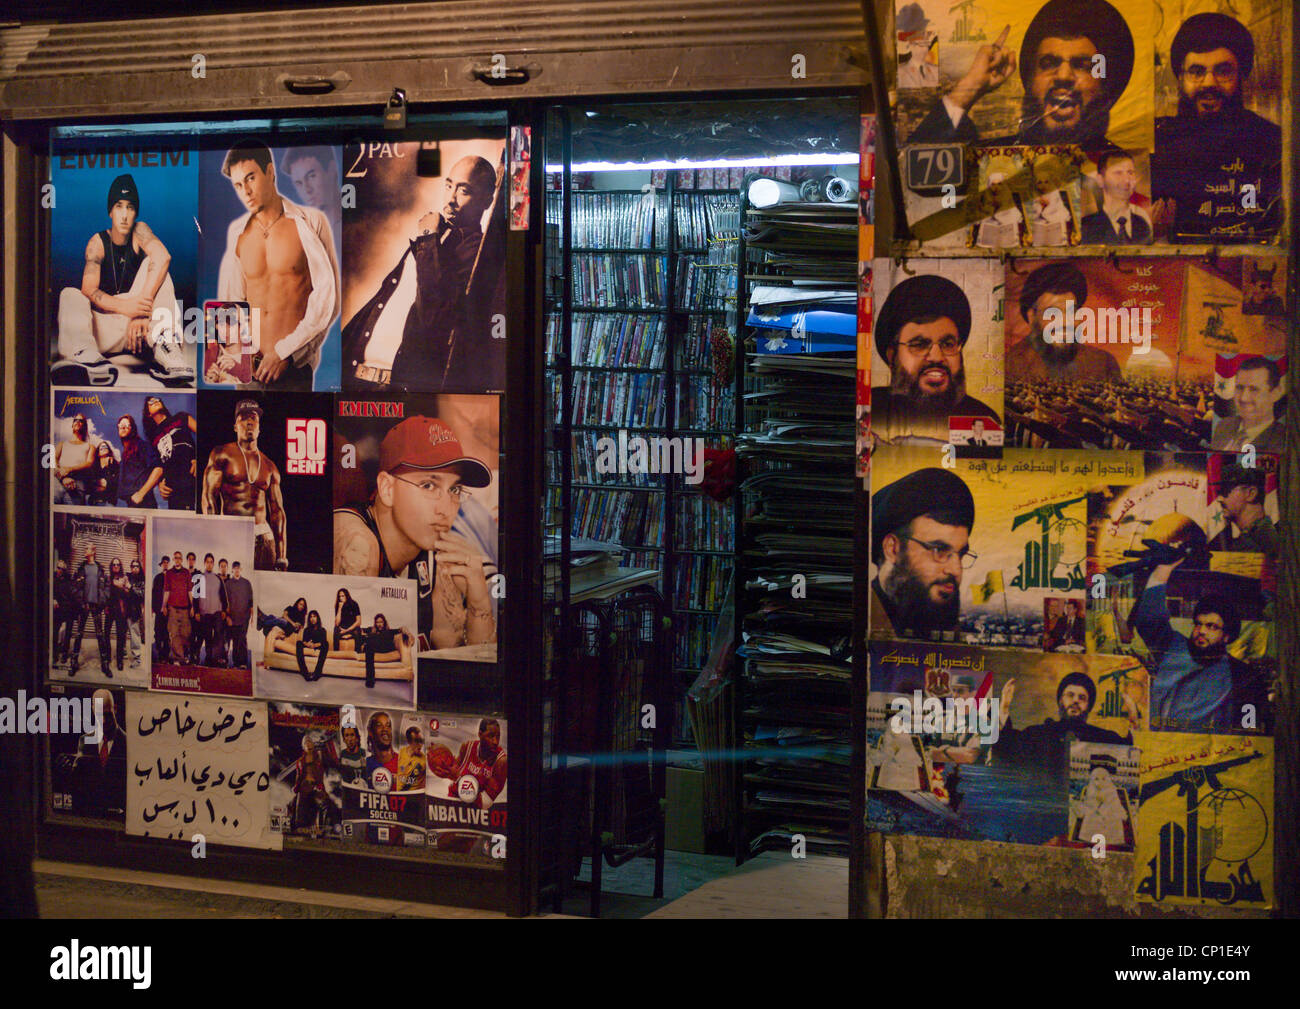 Records Shop With Rap and Hezbollah Posters, Damascus, Syria - Stock Image